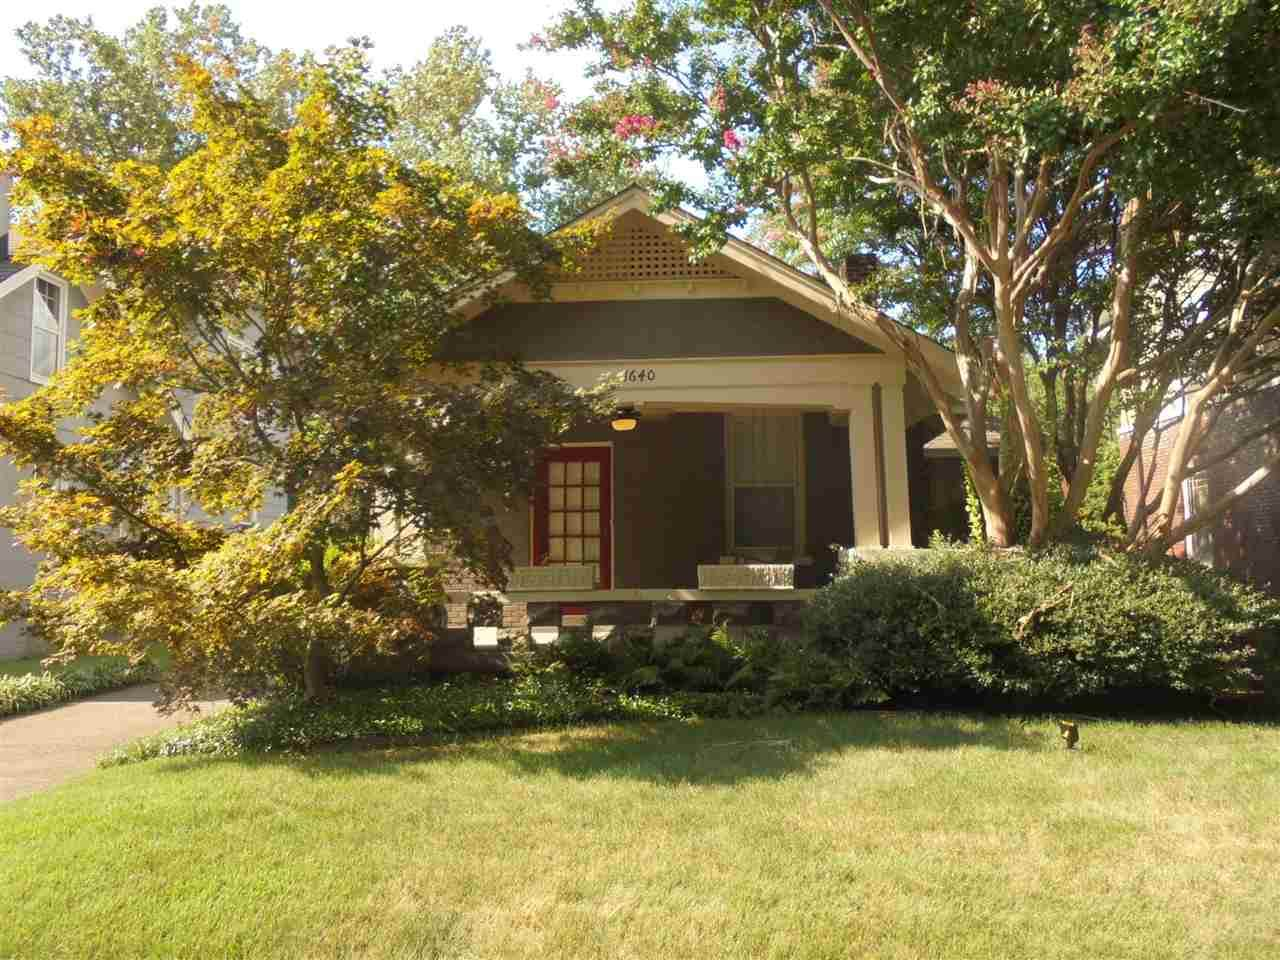 1640 Linden Ave - Photo 1